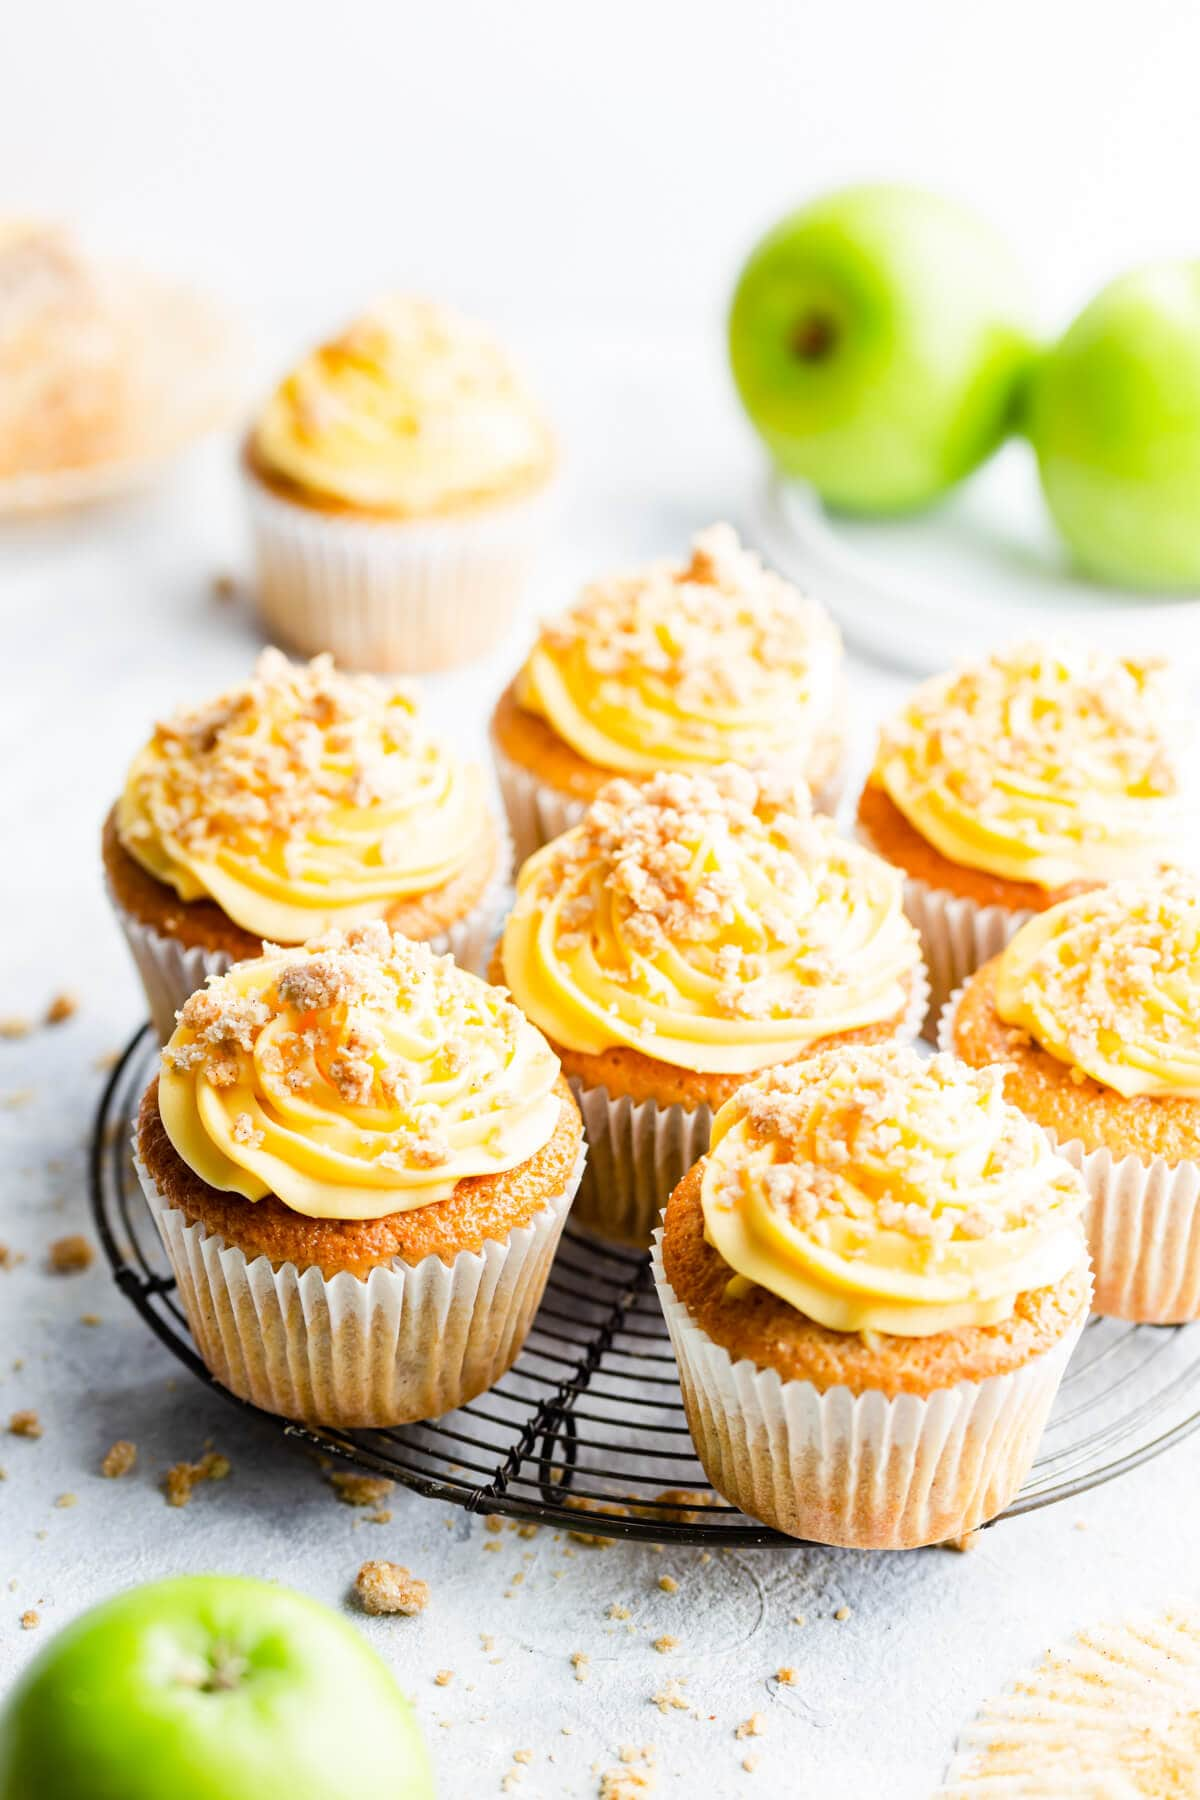 45 degree angle view at apple crumble cupcakes on a round wire rack